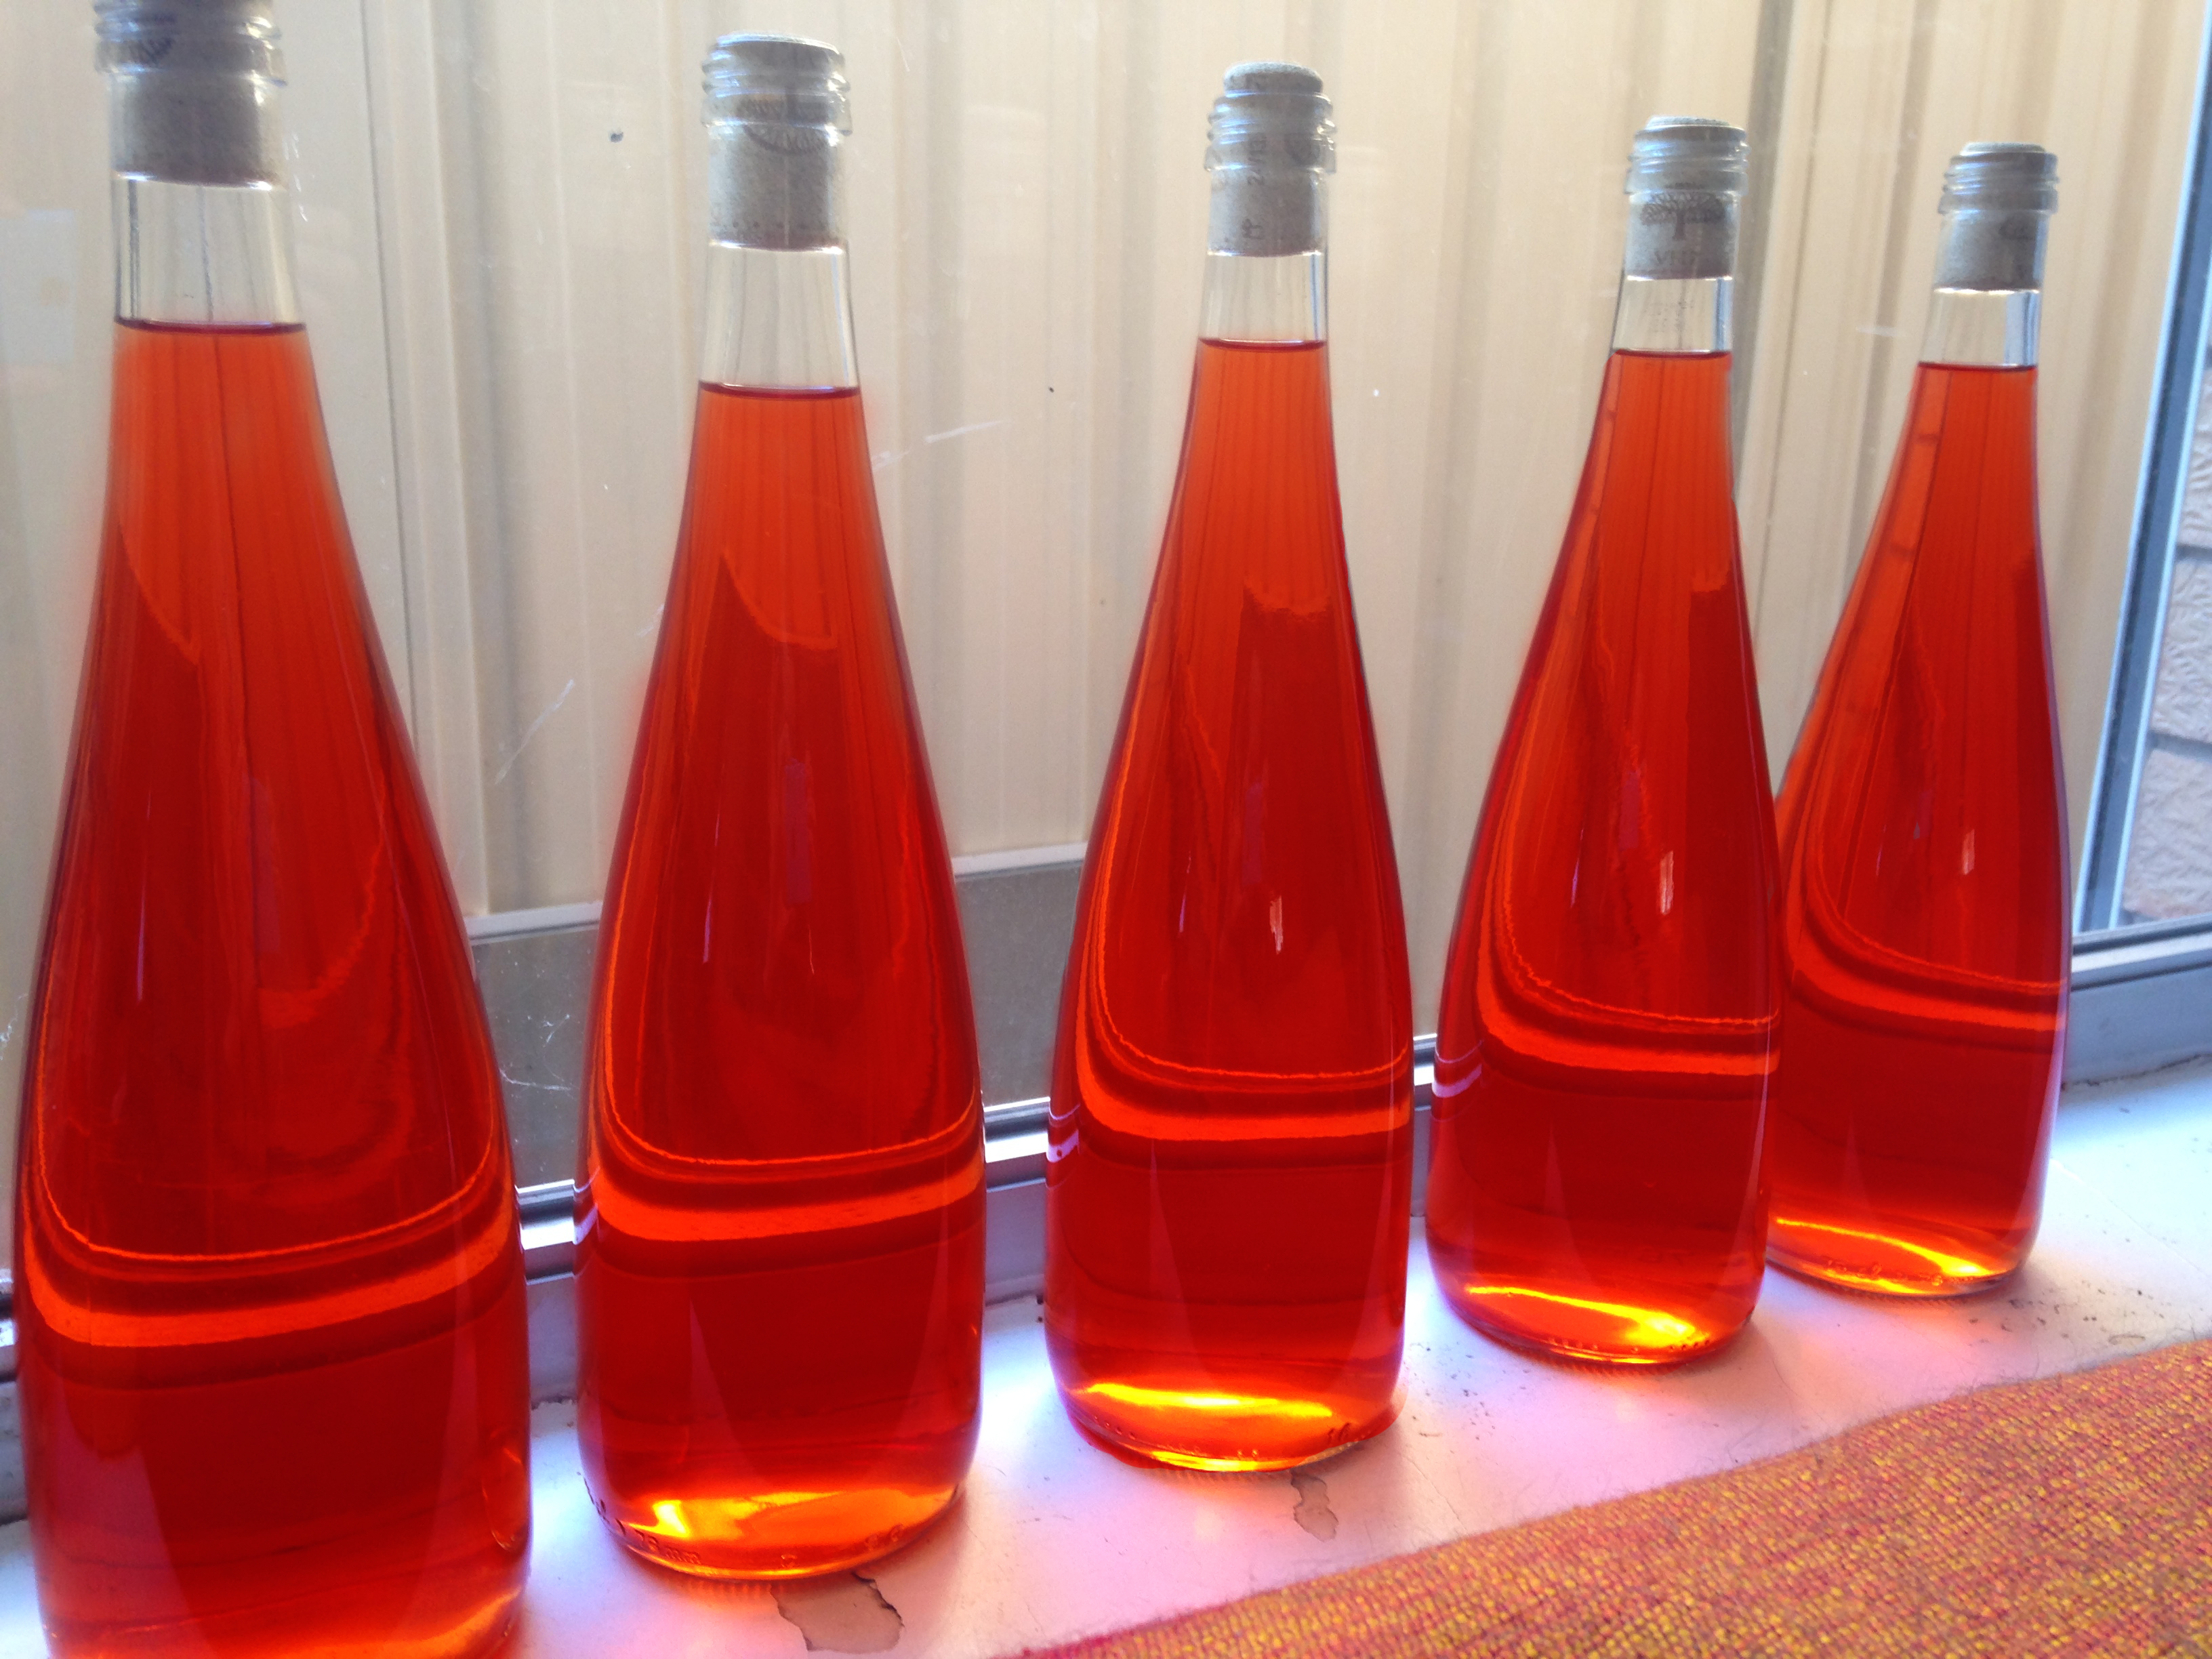 Bottles of strawberry wine